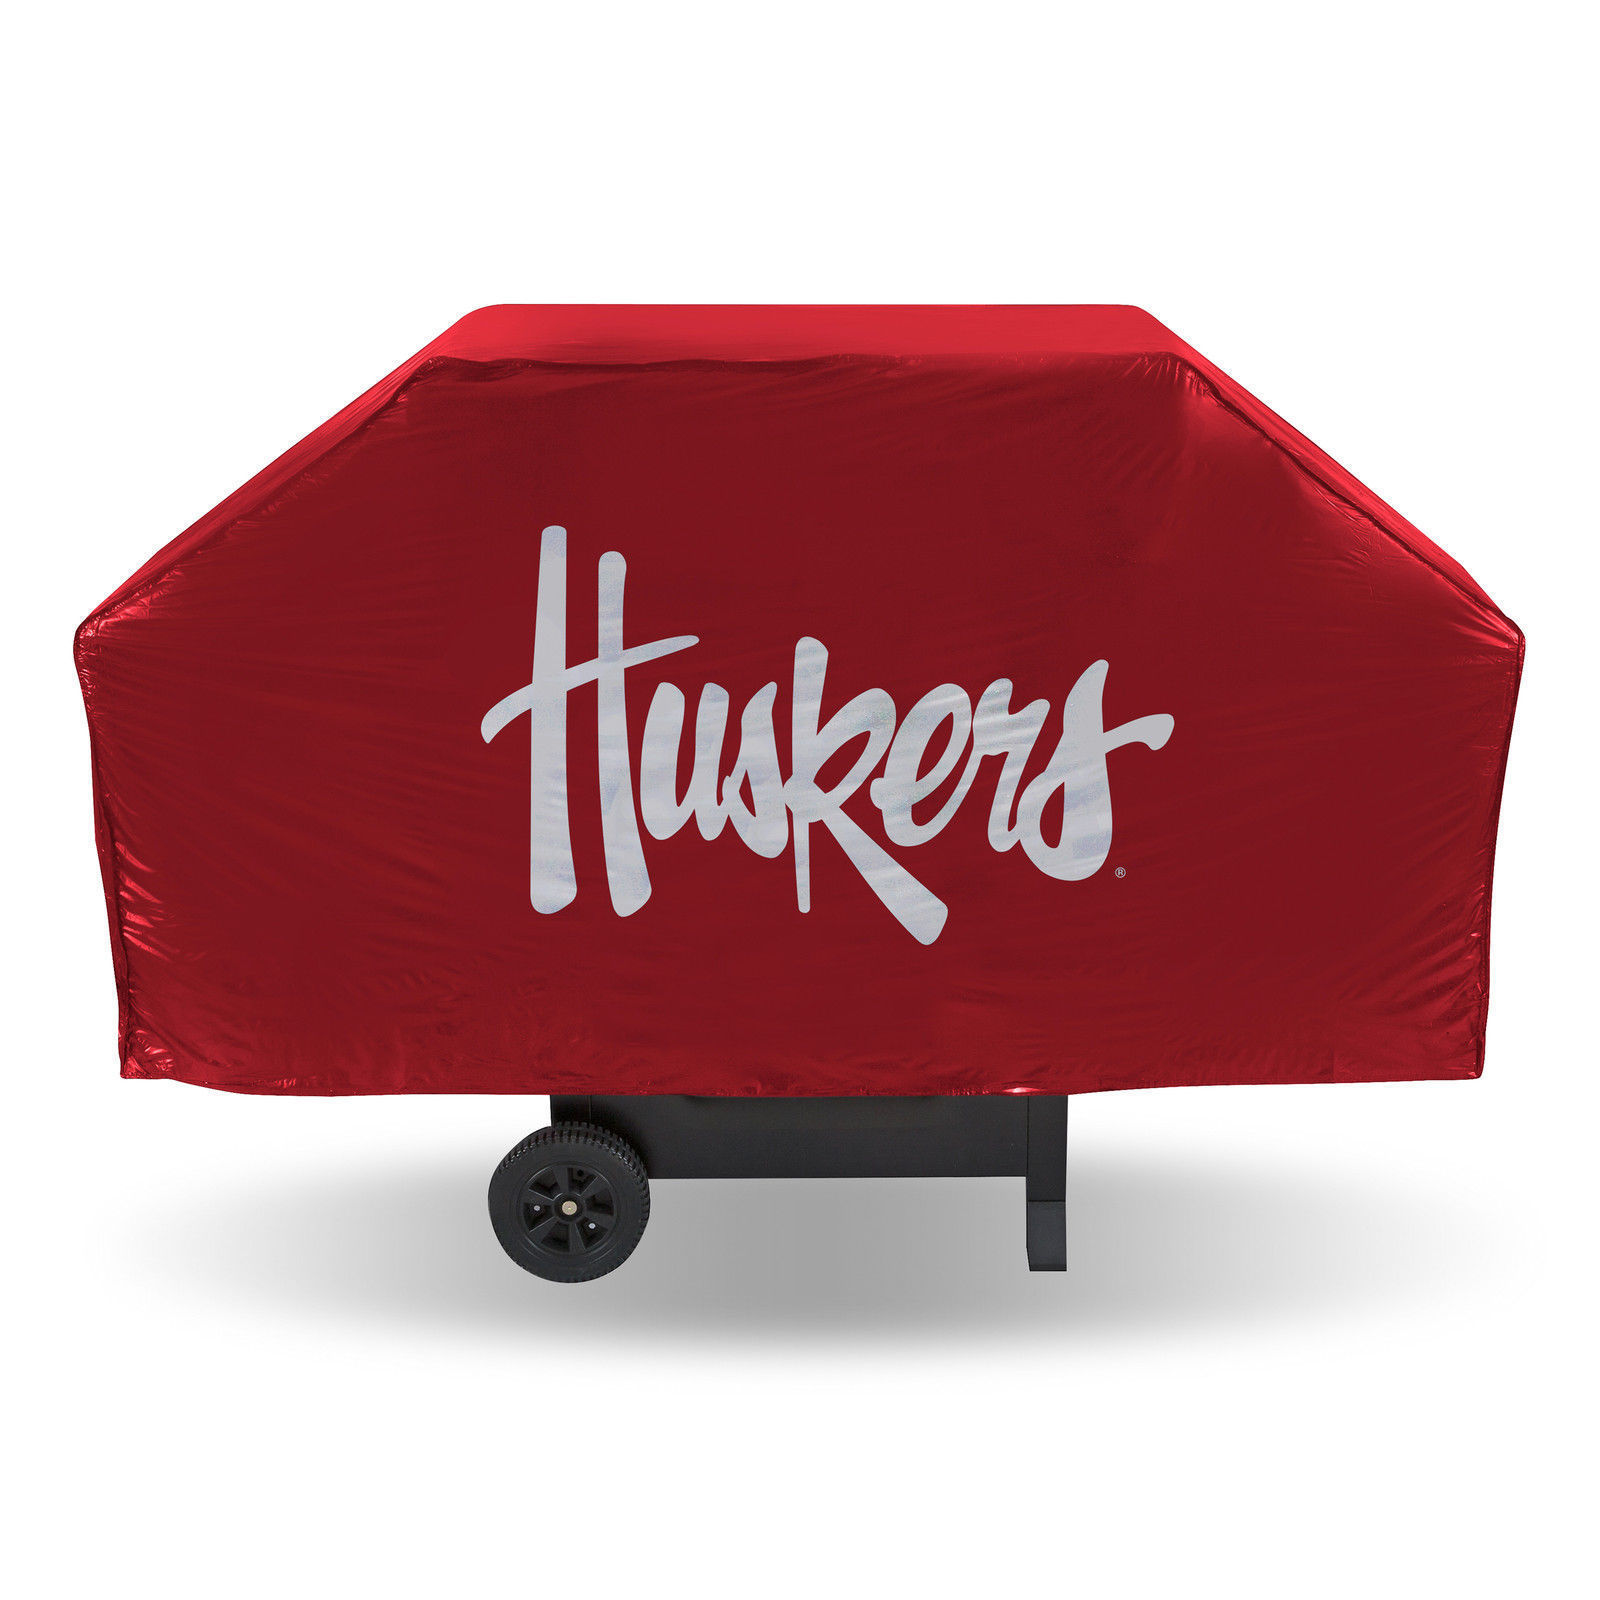 NEBRASKA HUSKERS ECONOMY BBQ BARBEQUE GRILL COVER